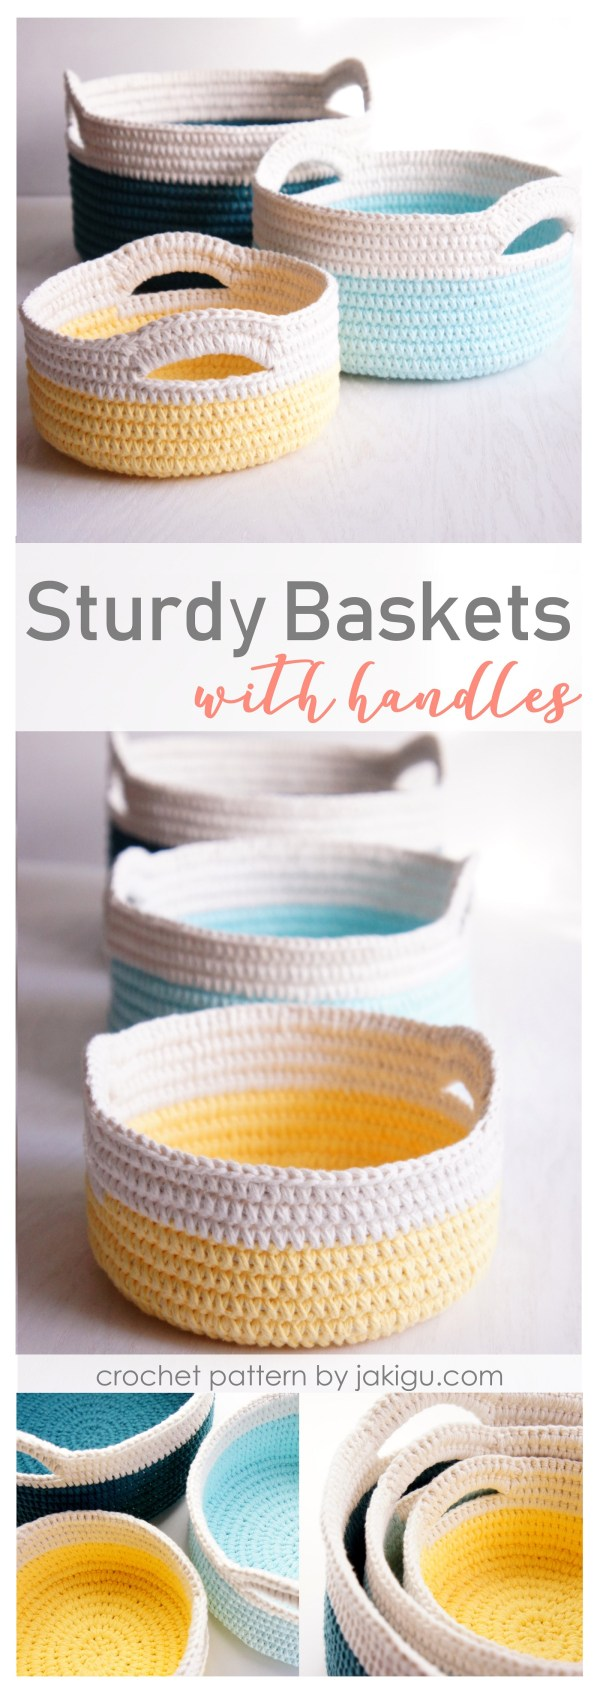 Sturdy crochet baskets with handles | jakigu.com